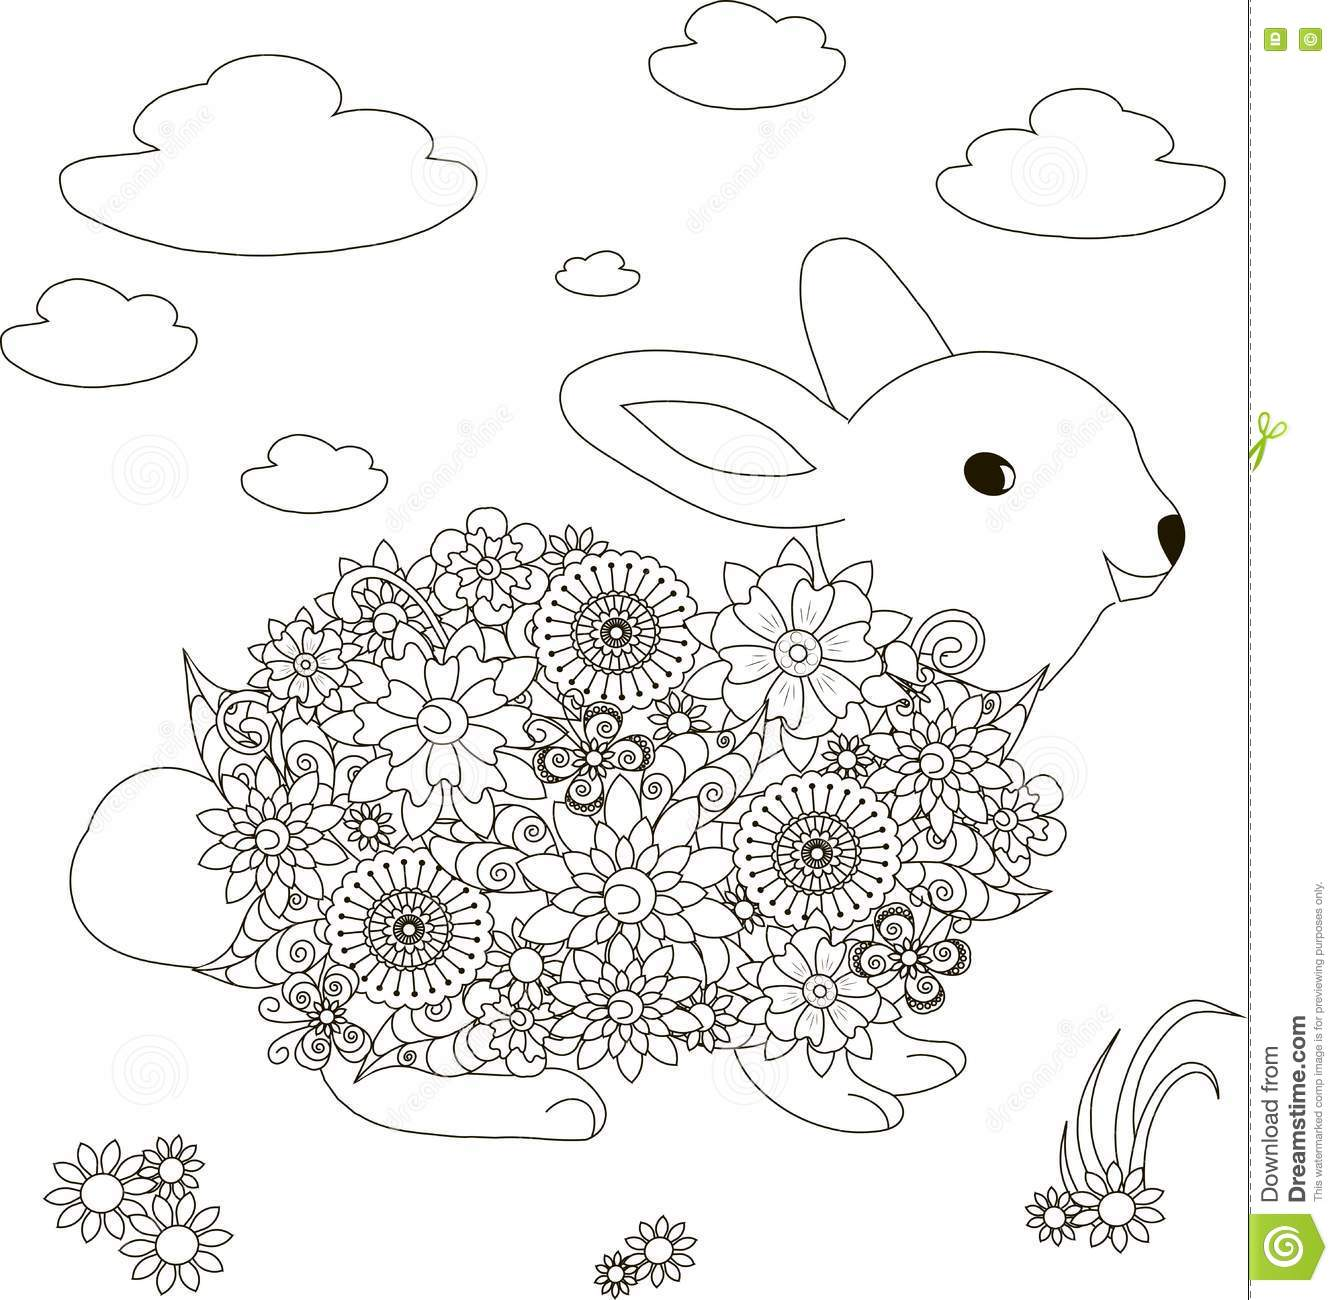 Flowers Rabbit Coloring Page Anti Stress Stock Vector